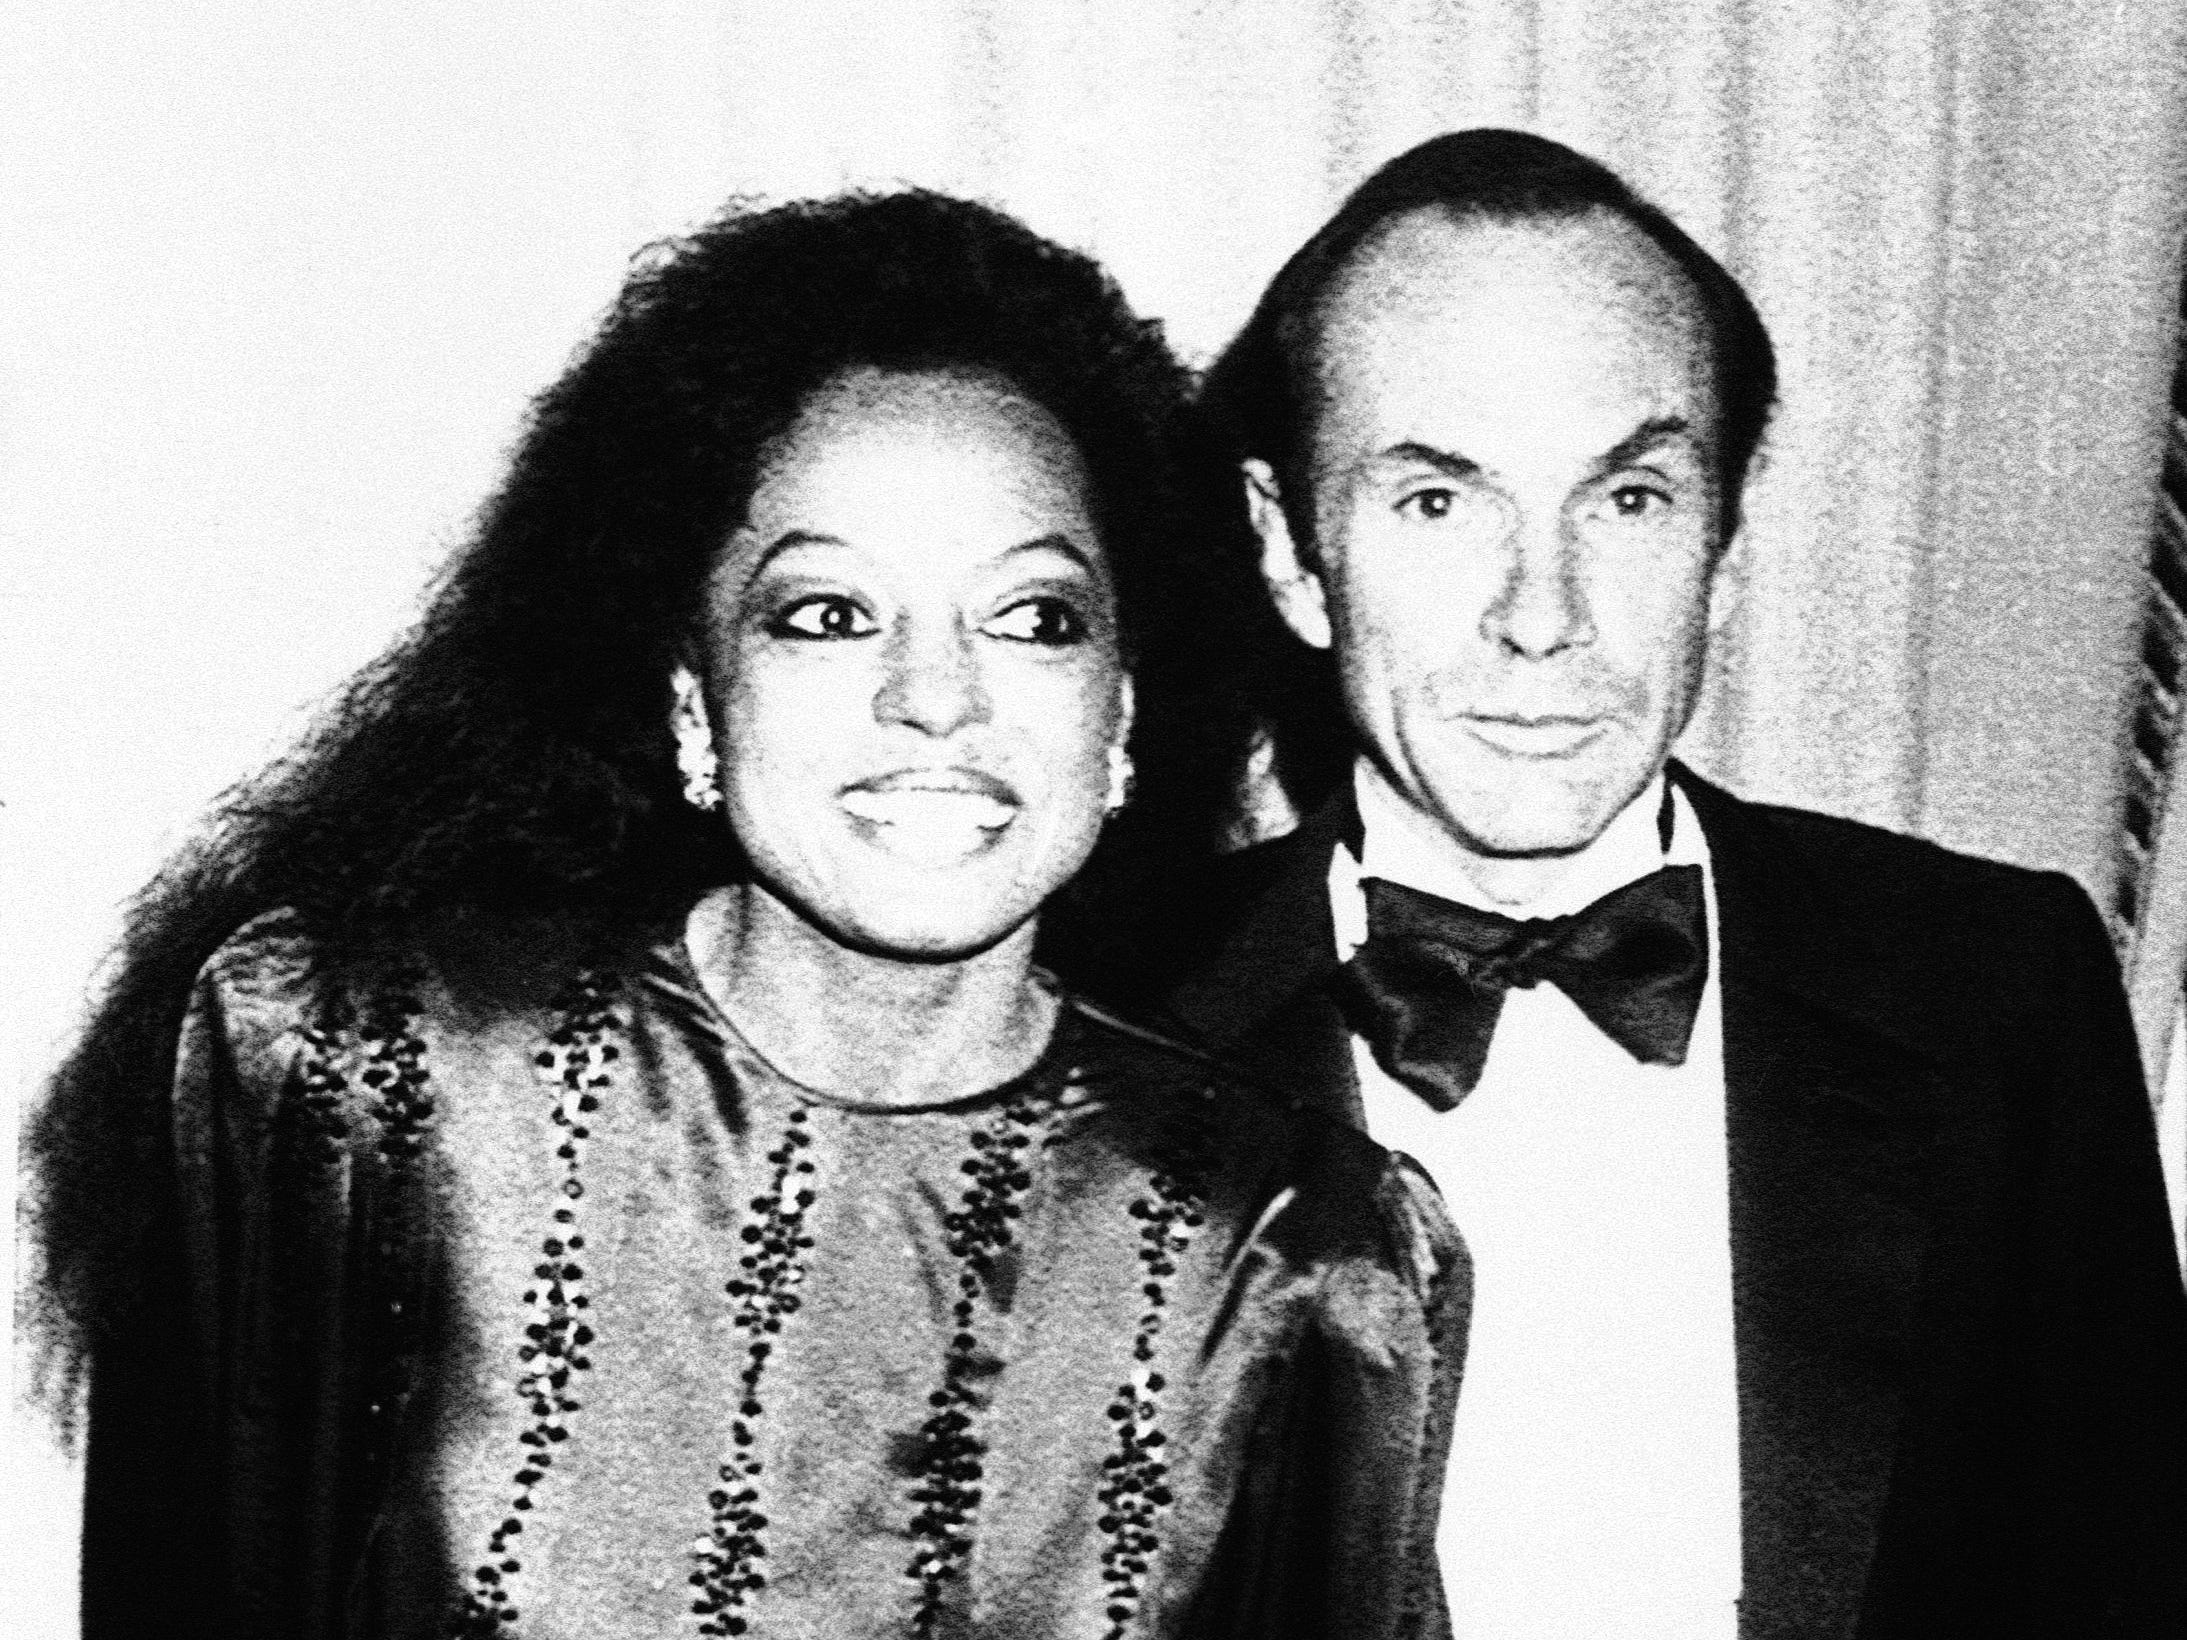 In 1985, Diana Ross met Norwegian shipping magnate and noted mountaineer  Arne Naess in the Bahamas.  They would marry that year and would have two sons,  Ross Arne Naess  (born in 1987) and Evan Olav Naess (born in 1988).